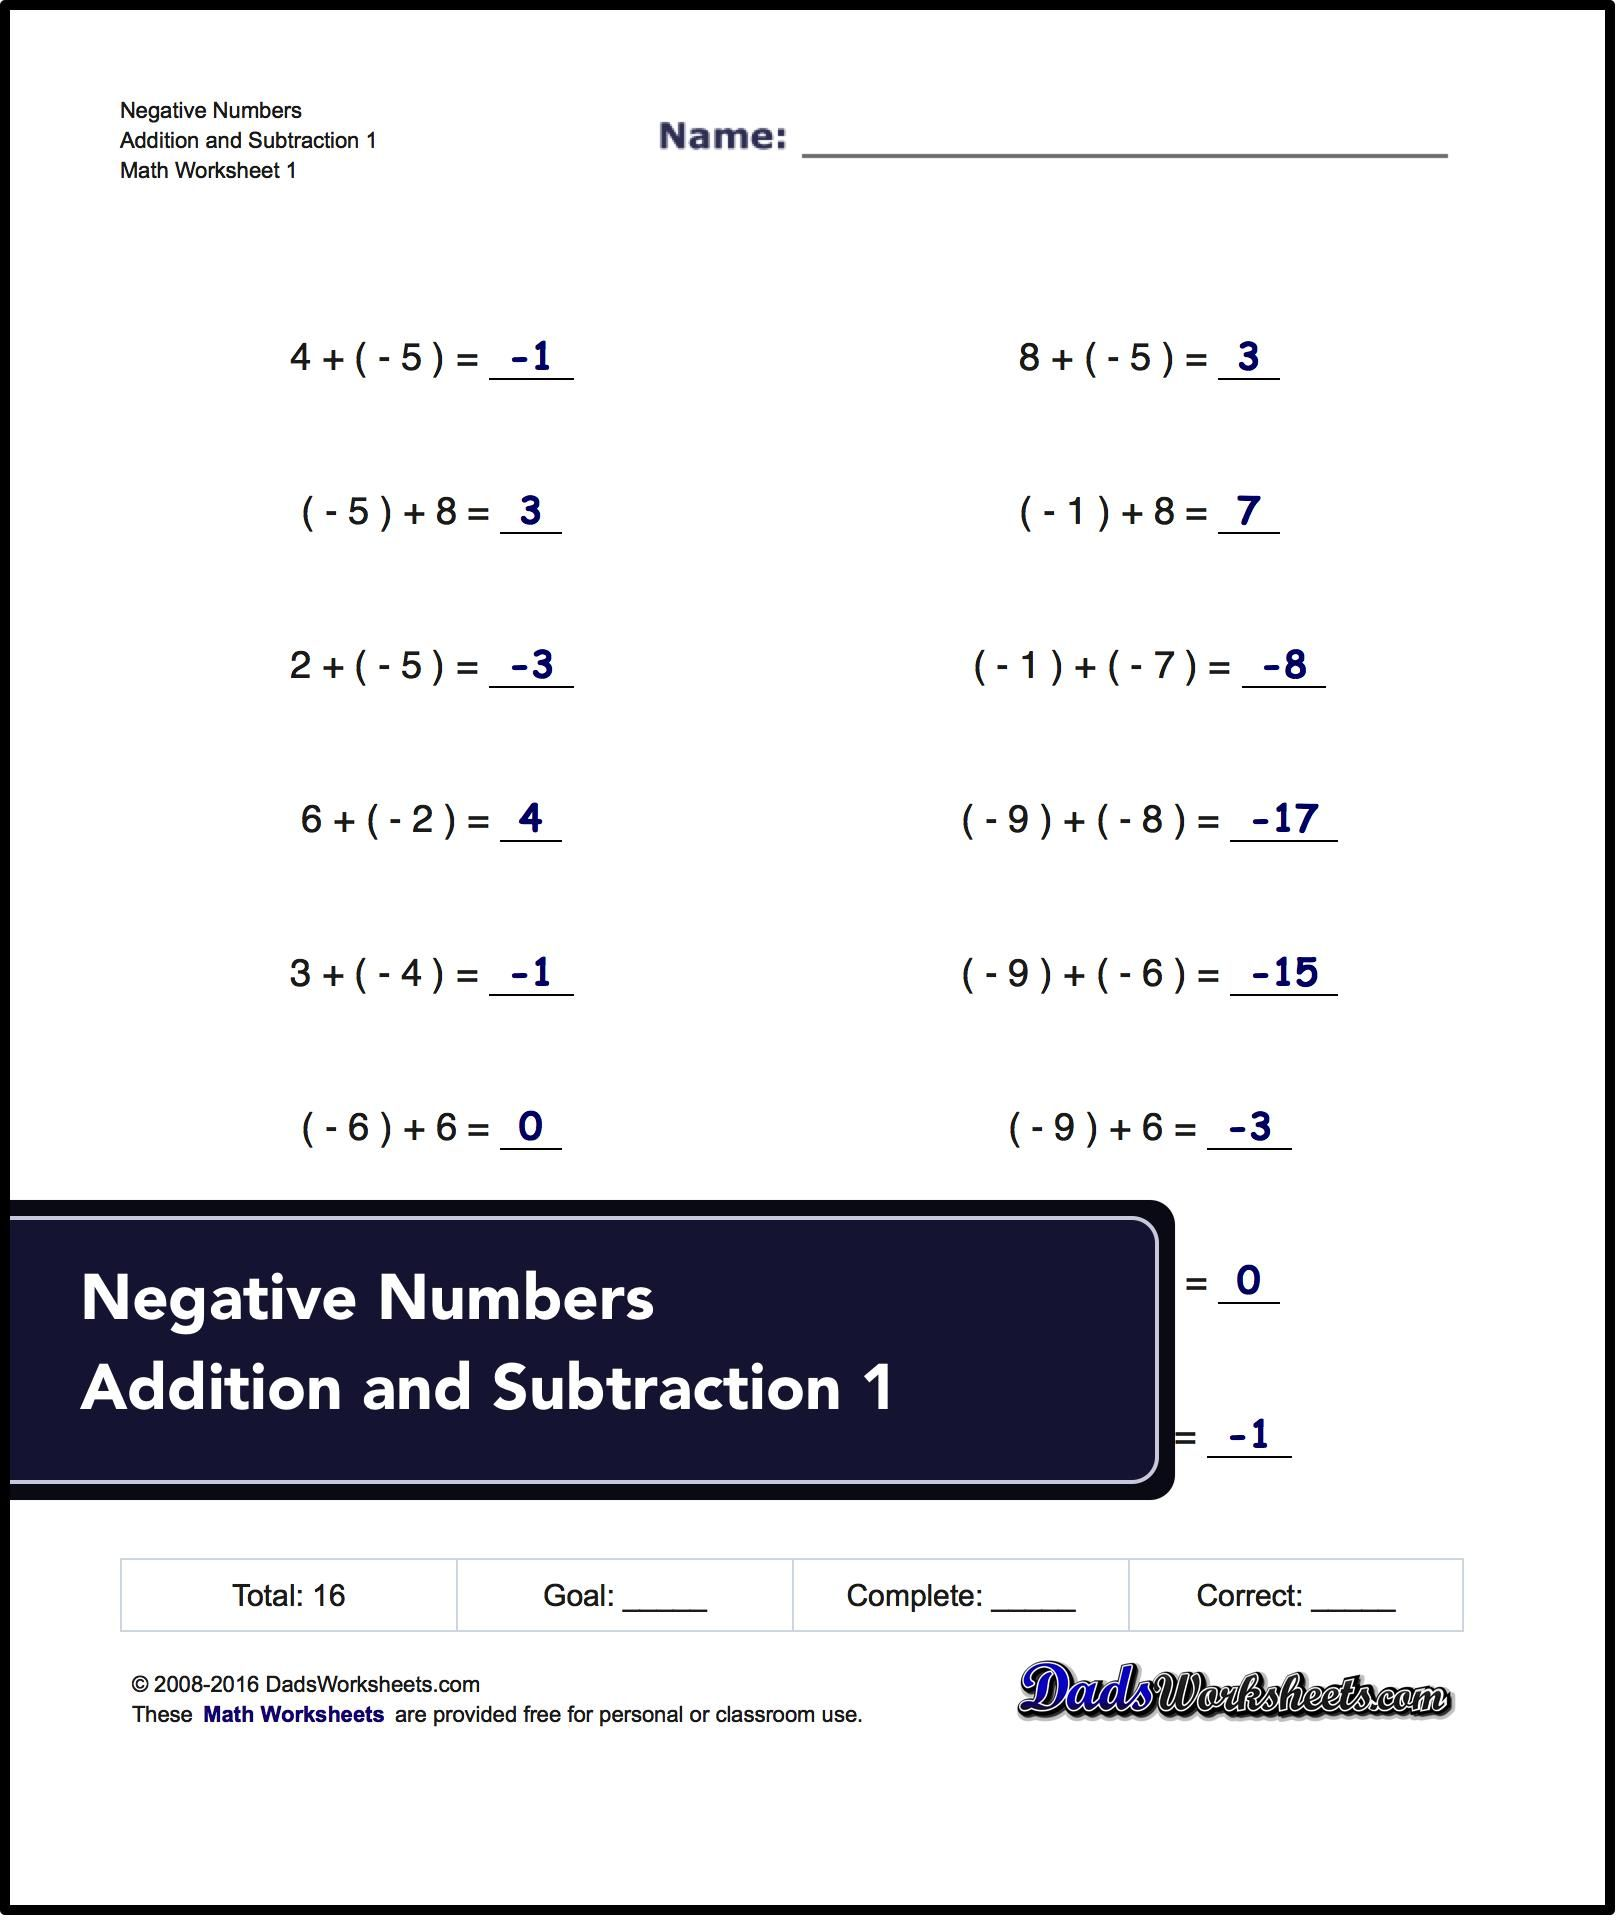 Negative Numbers Addition And Subtraction